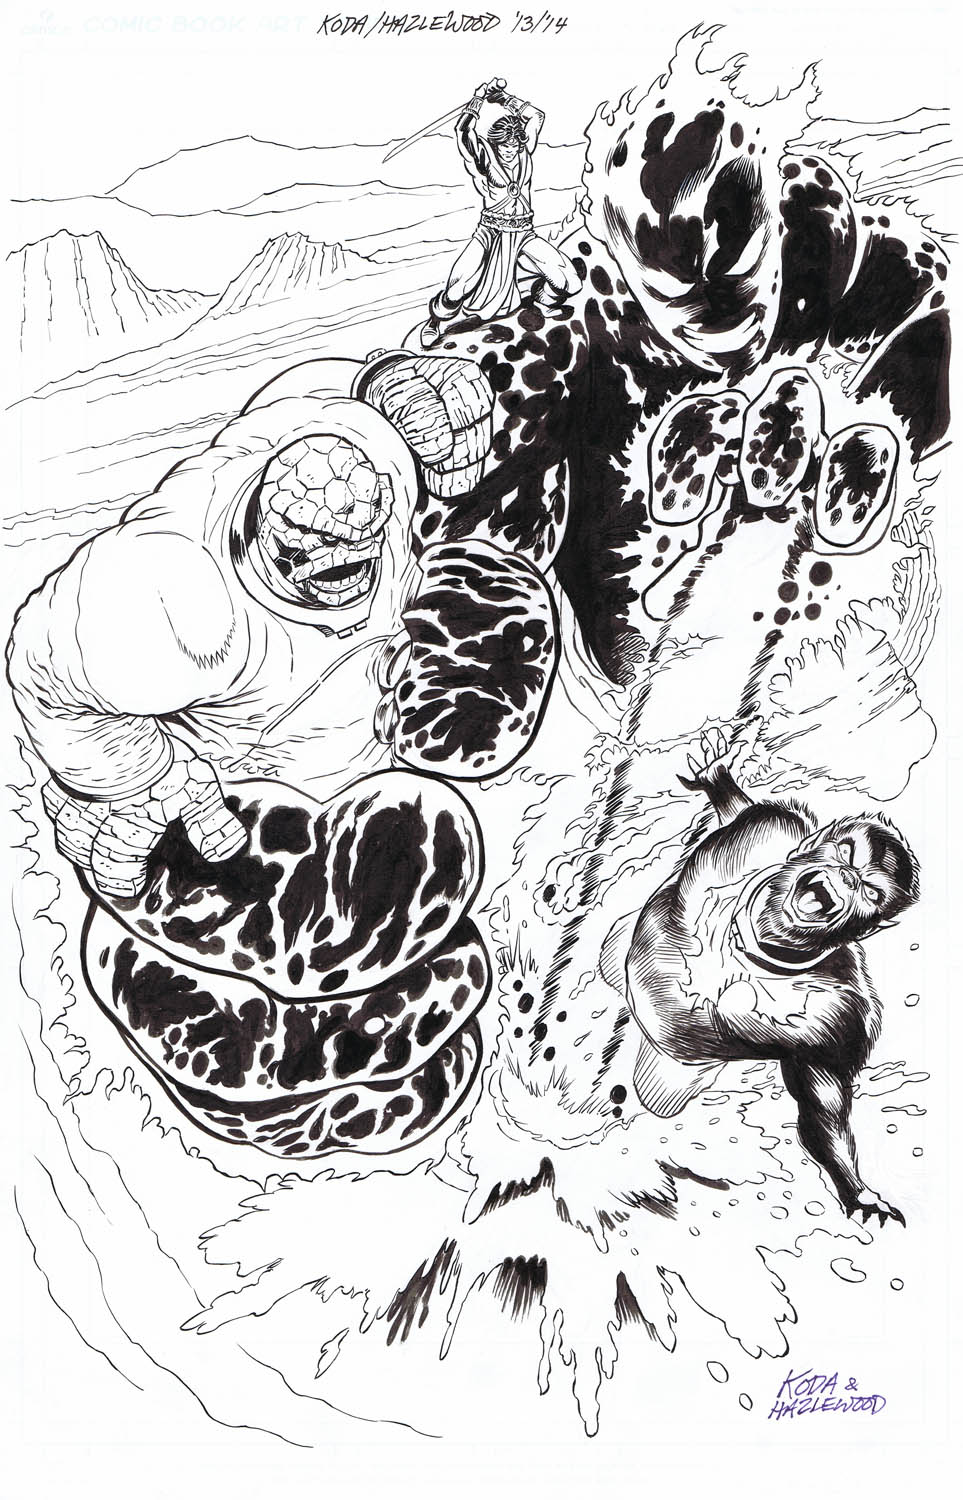 Thing/Werewolf By Night/John Carter Cover Reimag. by DRHazlewood